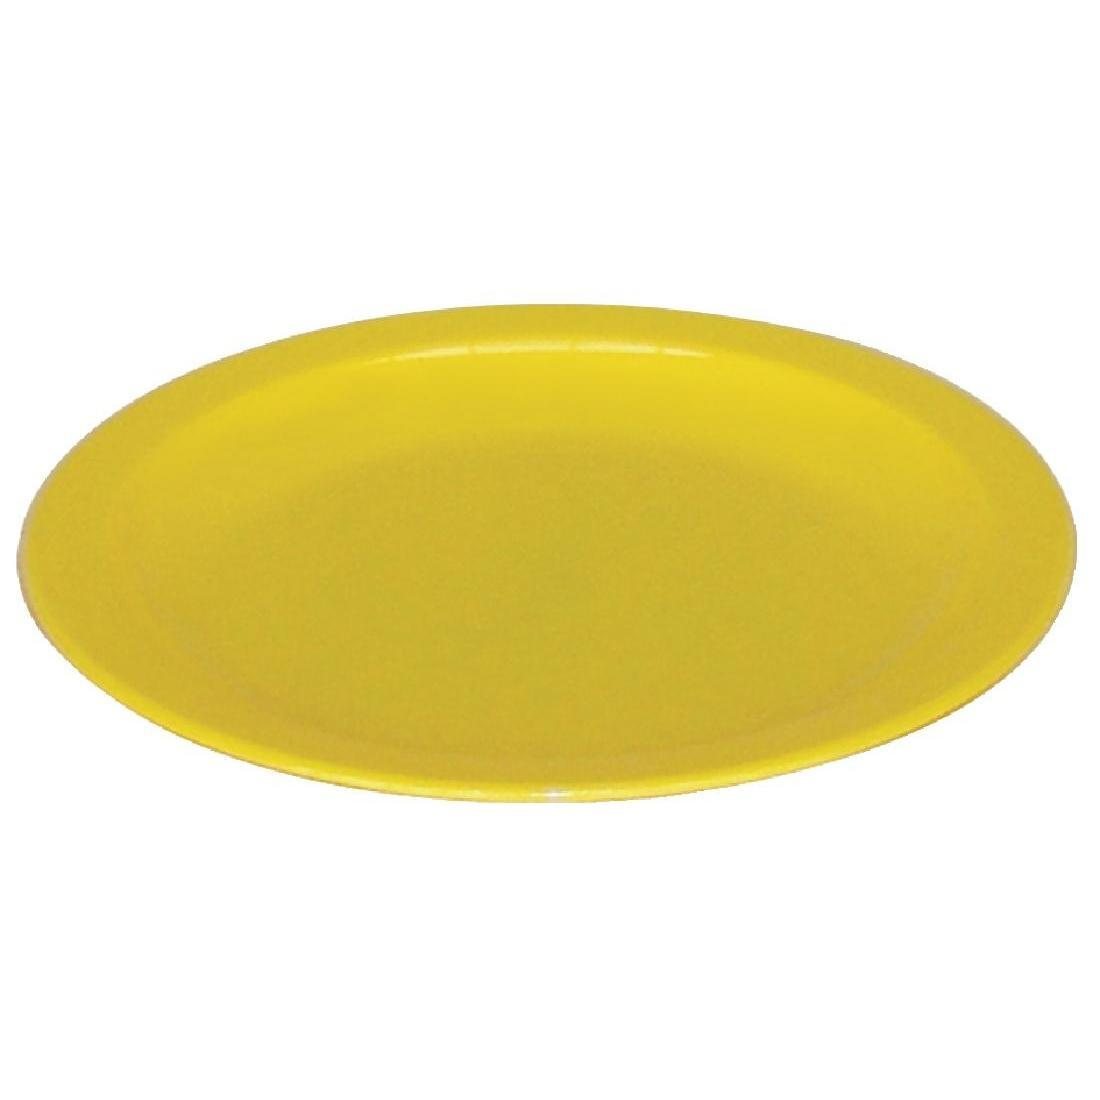 Kristallon Polycarbonate Plates Yellow 230mm - Case 12 - CB767